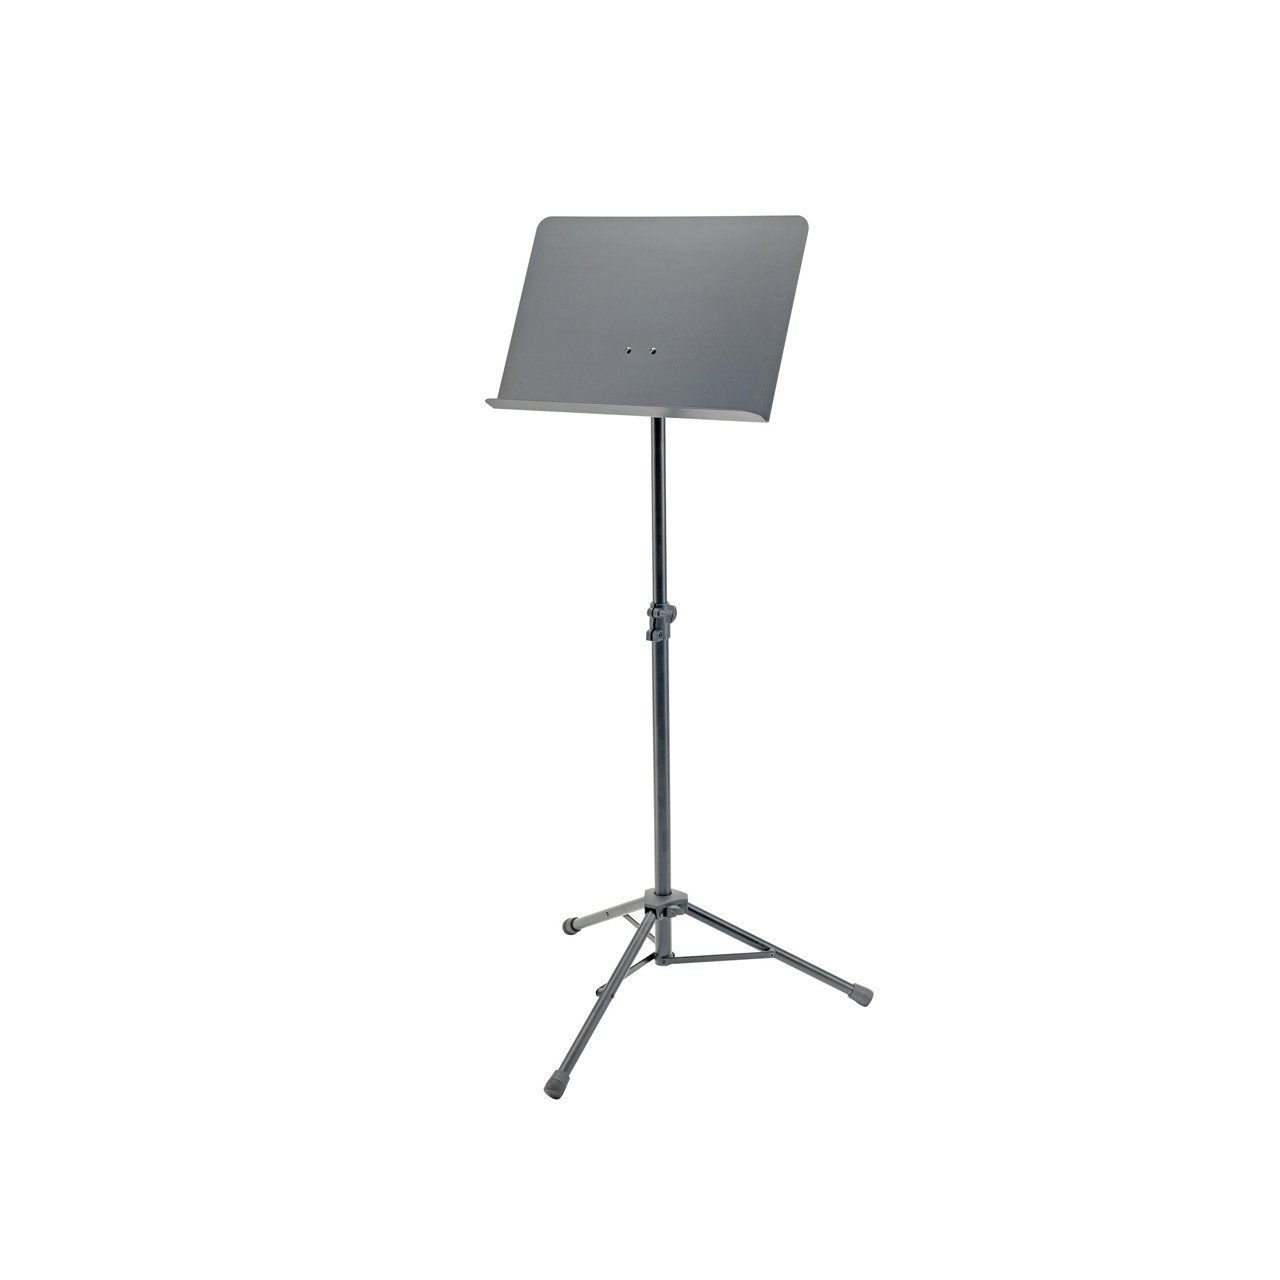 Konig & Meyer 11960 Orchestra music stand - black